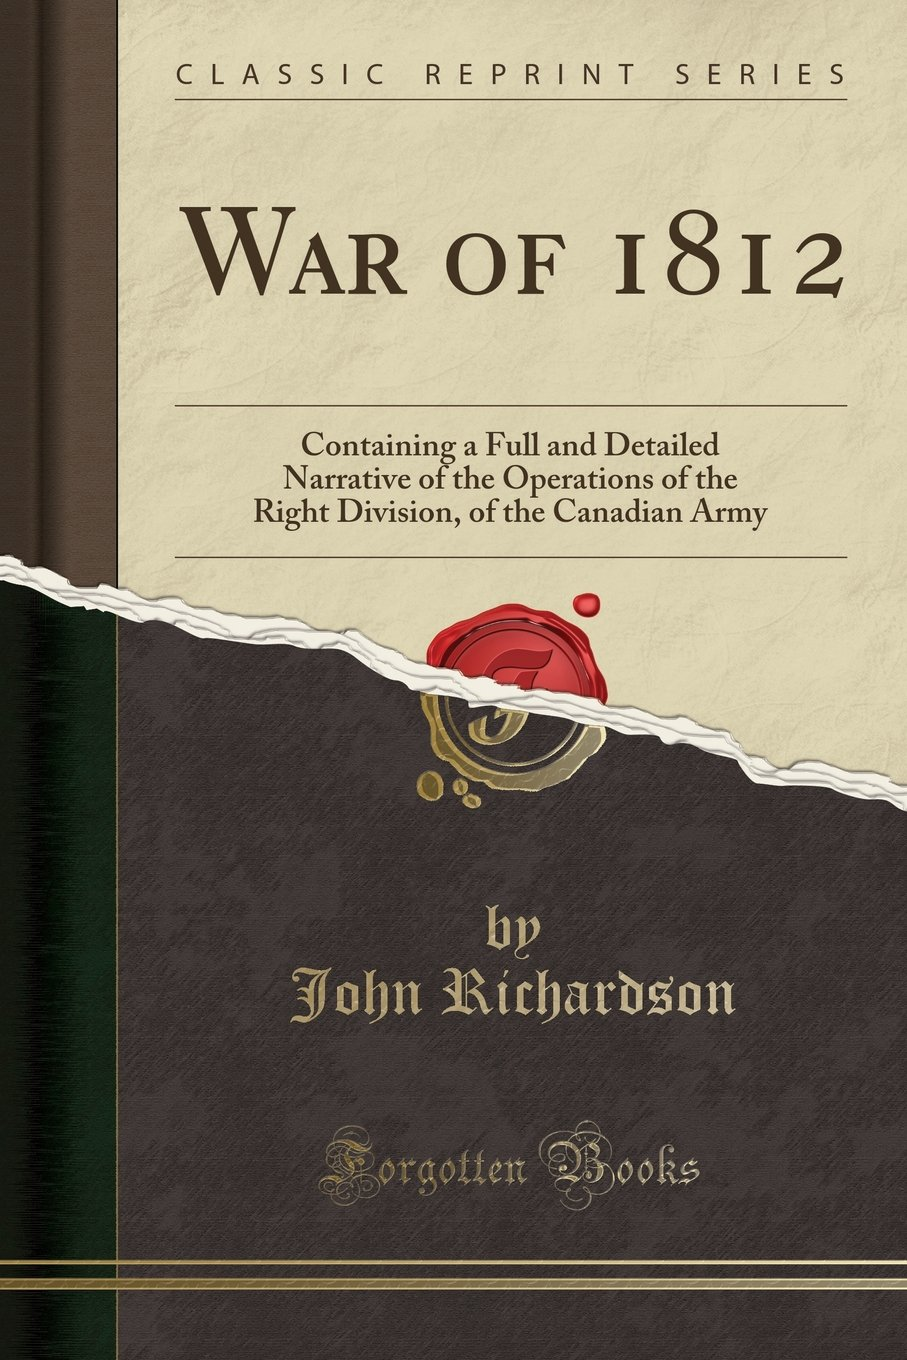 War of 1812: Containing a Full and Detailed Narrative of the Operations of the Right Division, of the Canadian Army (Classic Reprint)